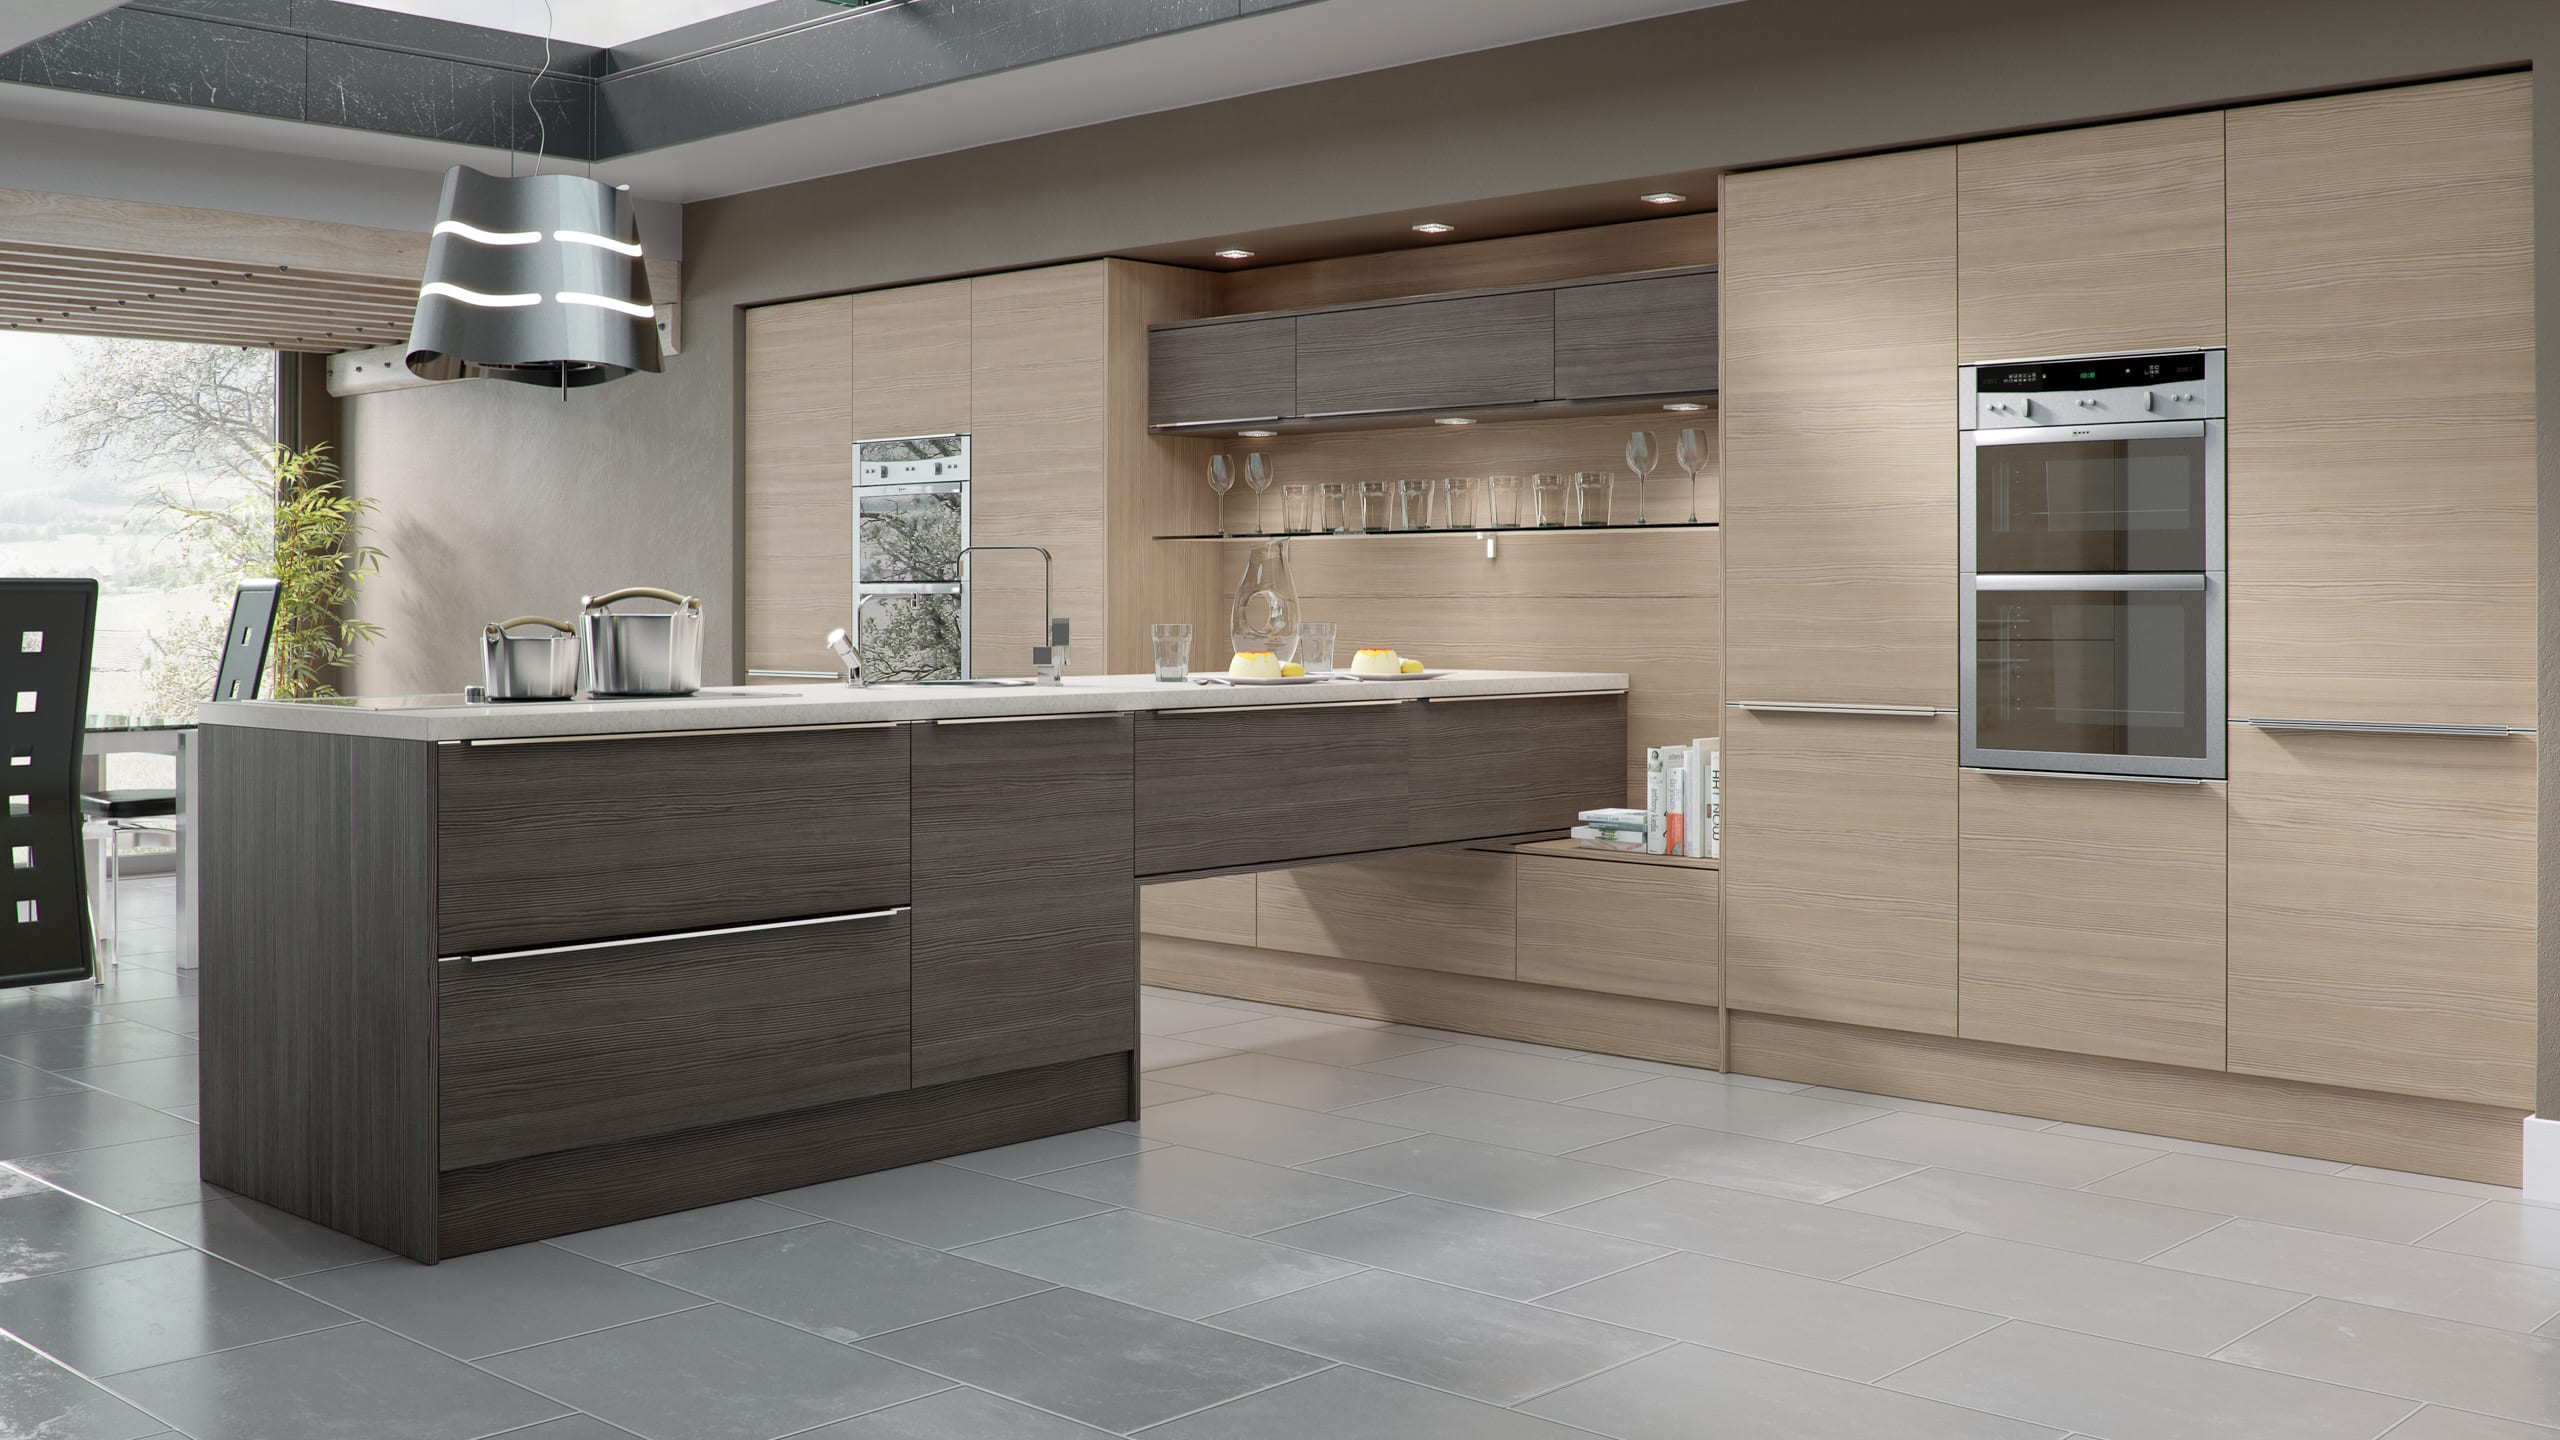 Woodgrain Brown Grey Avola and Champagne Avola - contemporary kitchen